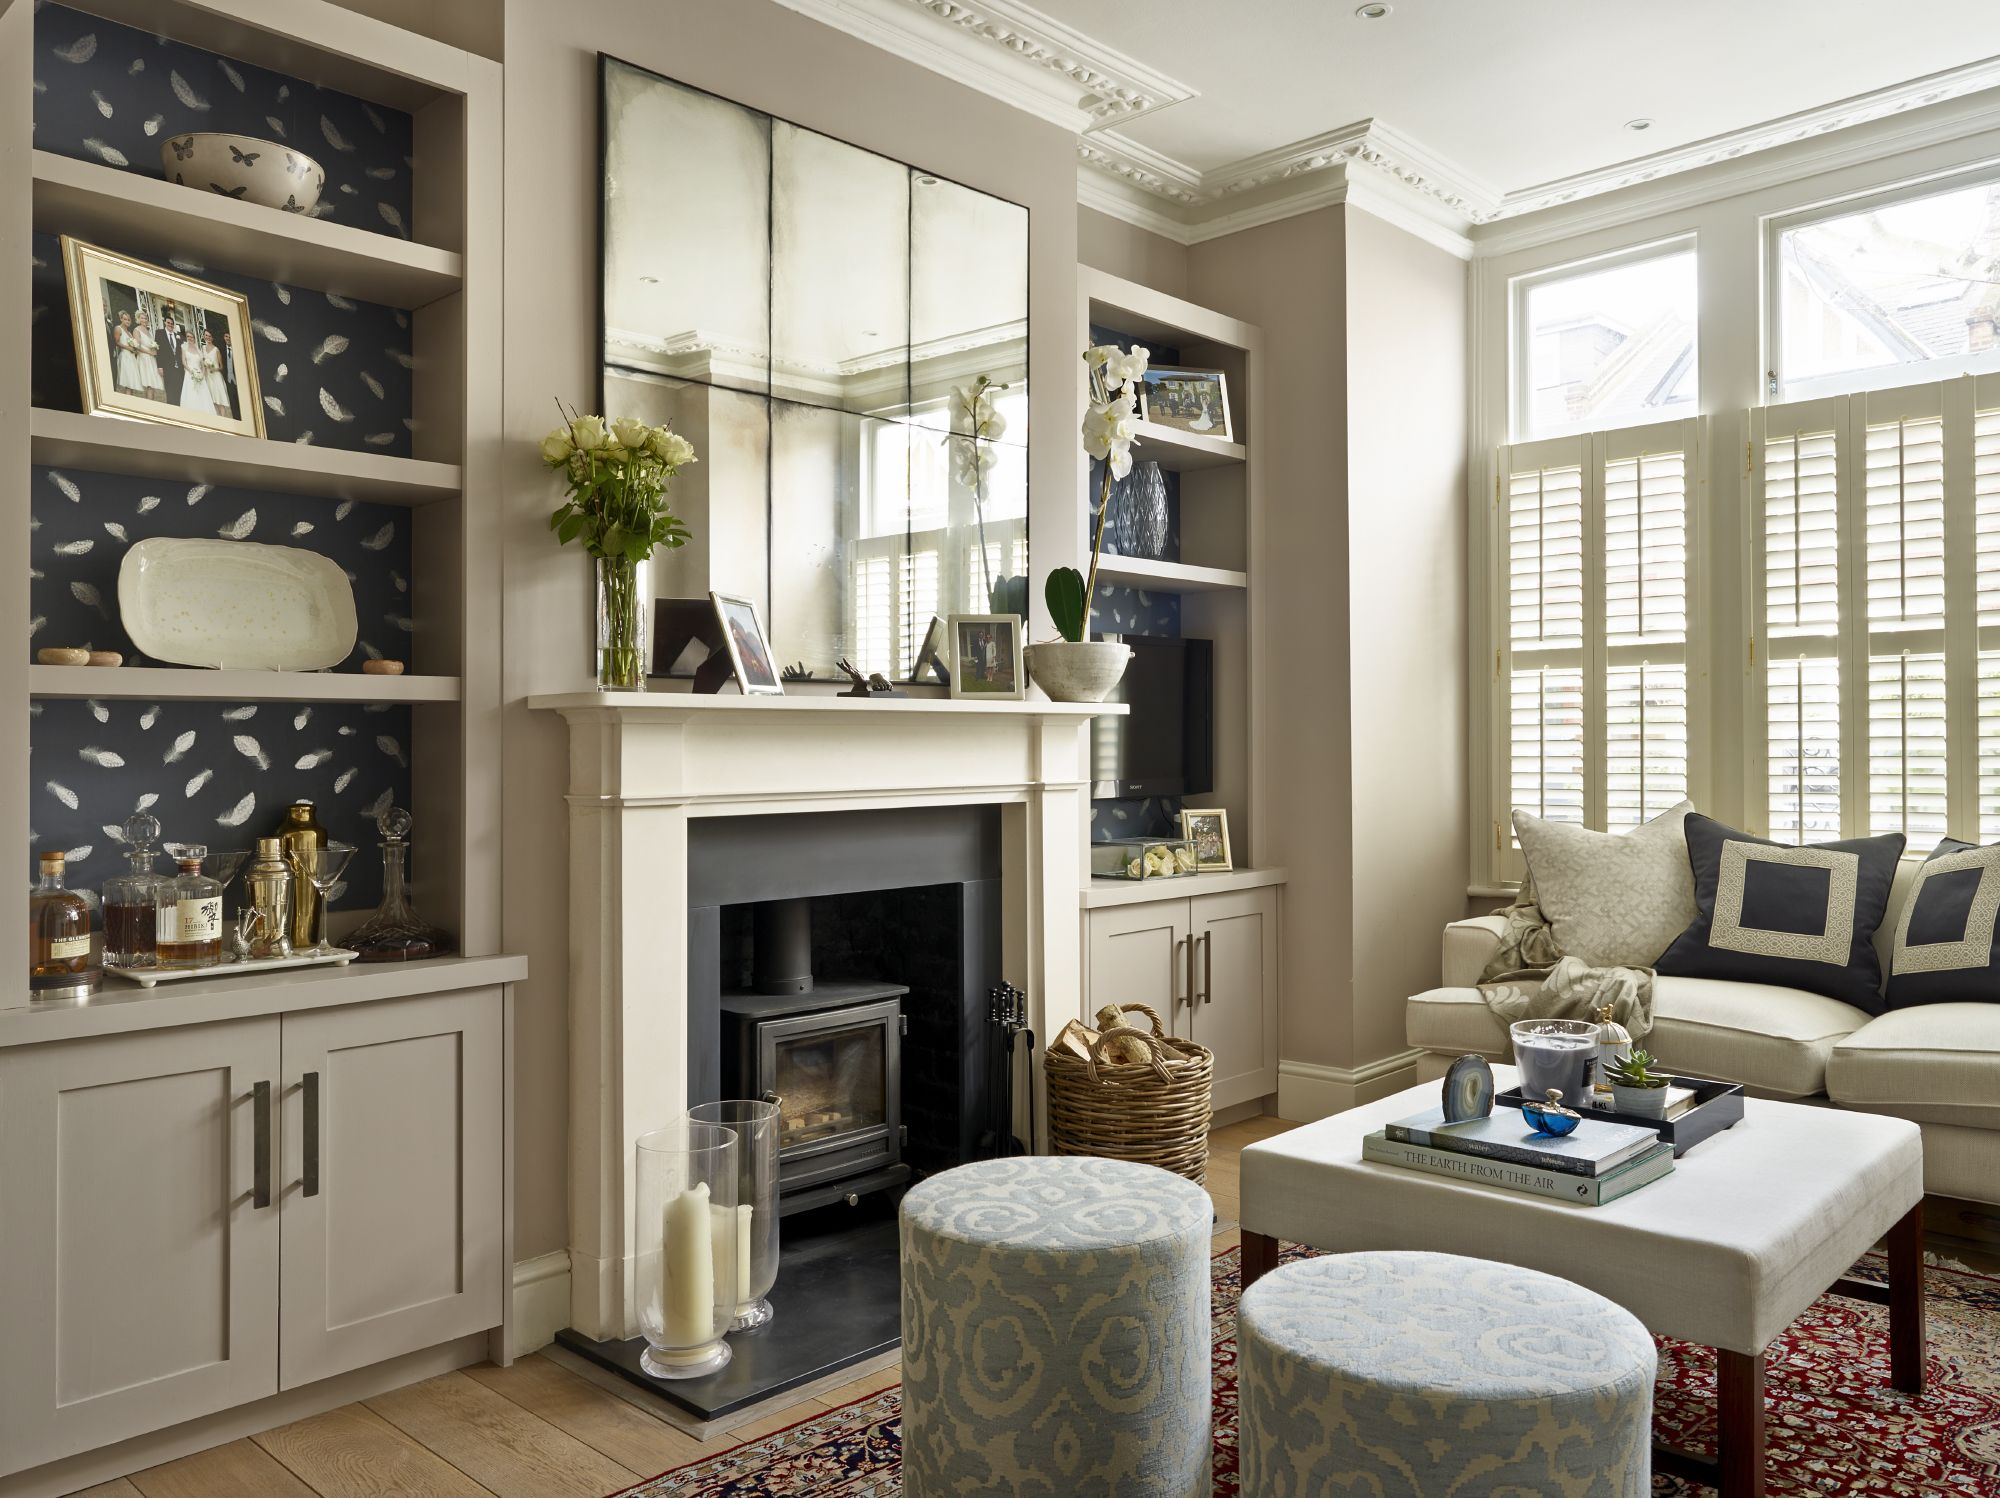 upholstered stools for living room. Lily Paulson Ellis Designs Living Room with antique mirror  joinery feature back wallpaper and upholstered stools